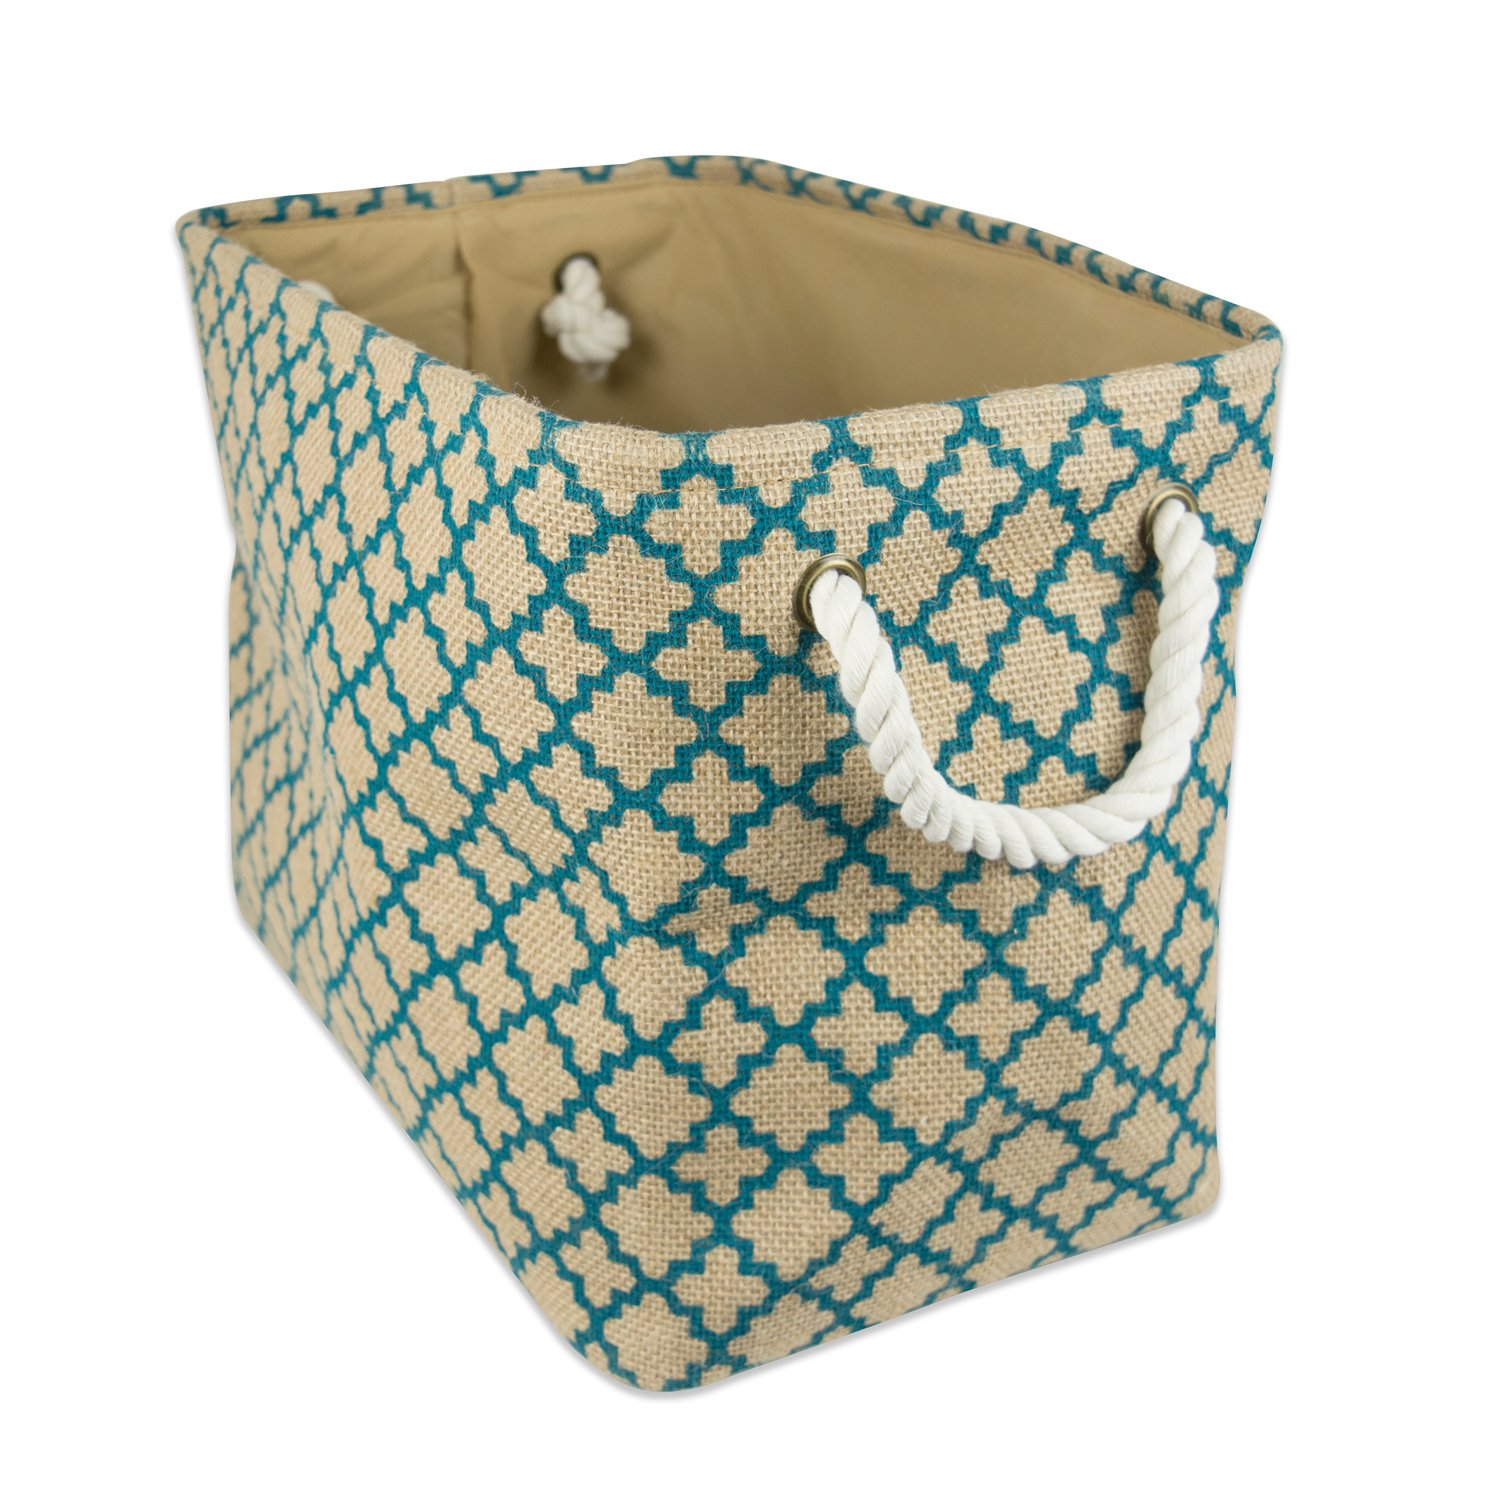 DII CAMZ36635 Collapsible Burlap Storage Basket Or Bin, 14'' x 8'' x 9''/Small, Lattice Teal